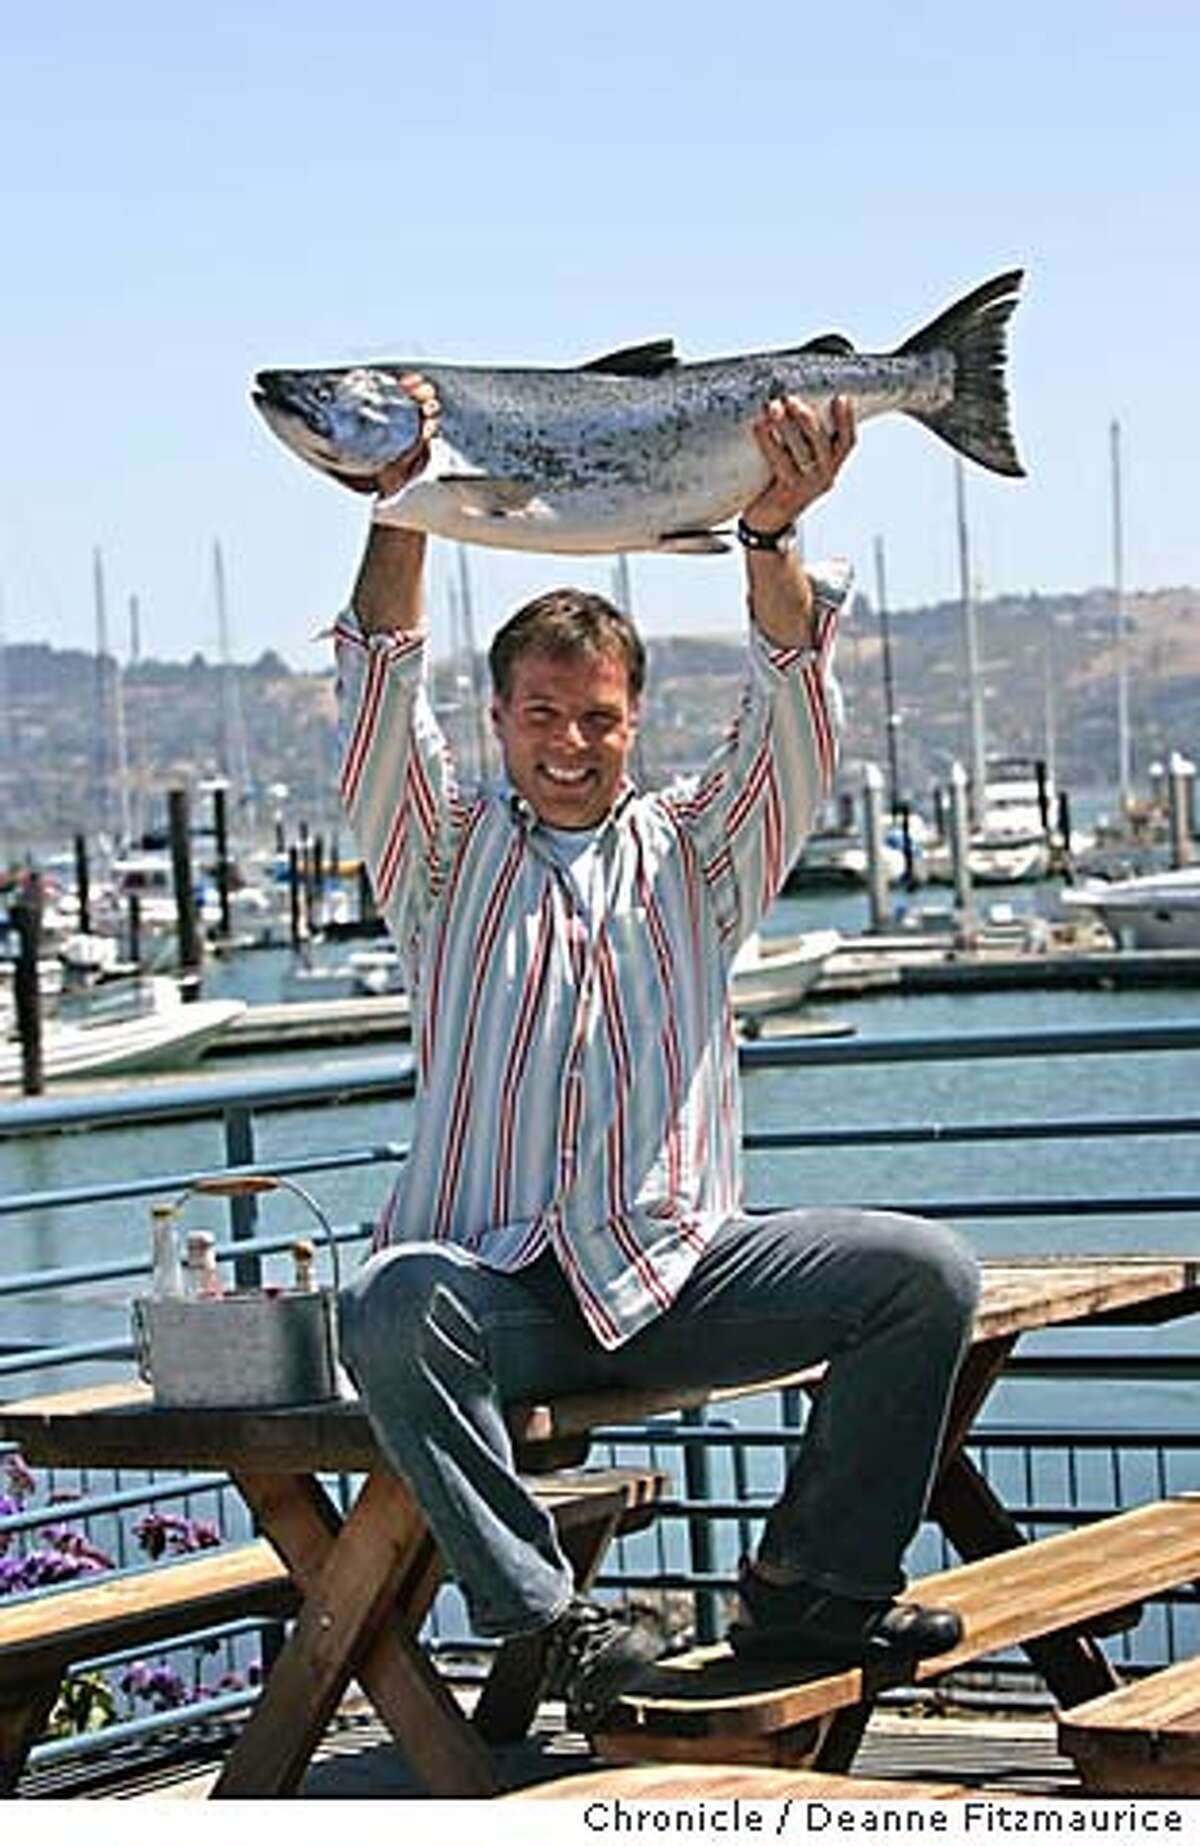 TV Chef, Joey Altman holds a freshly caught local salmon on a picnic bench at a restaurant he likes, Fish restaurant in Sausalito. San Francisco Chronicle/ Deanne Fitzmaurice